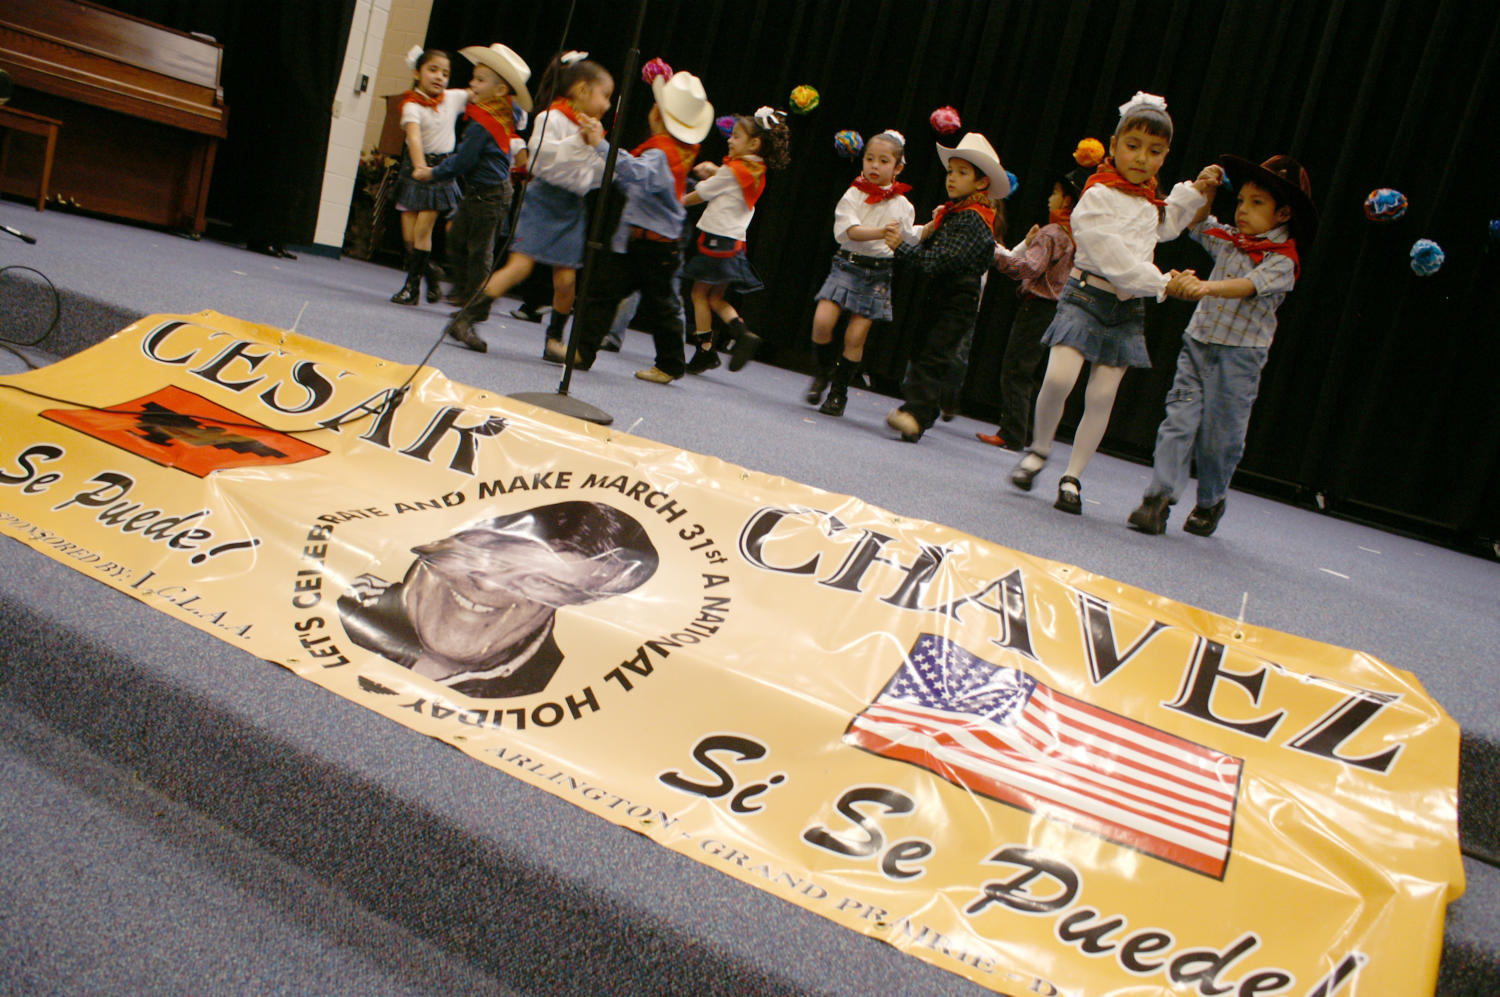 [Group of young dancers perform behind banner for Cesar Chavez Day]                                                                                                      [Sequence #]: 1 of 1